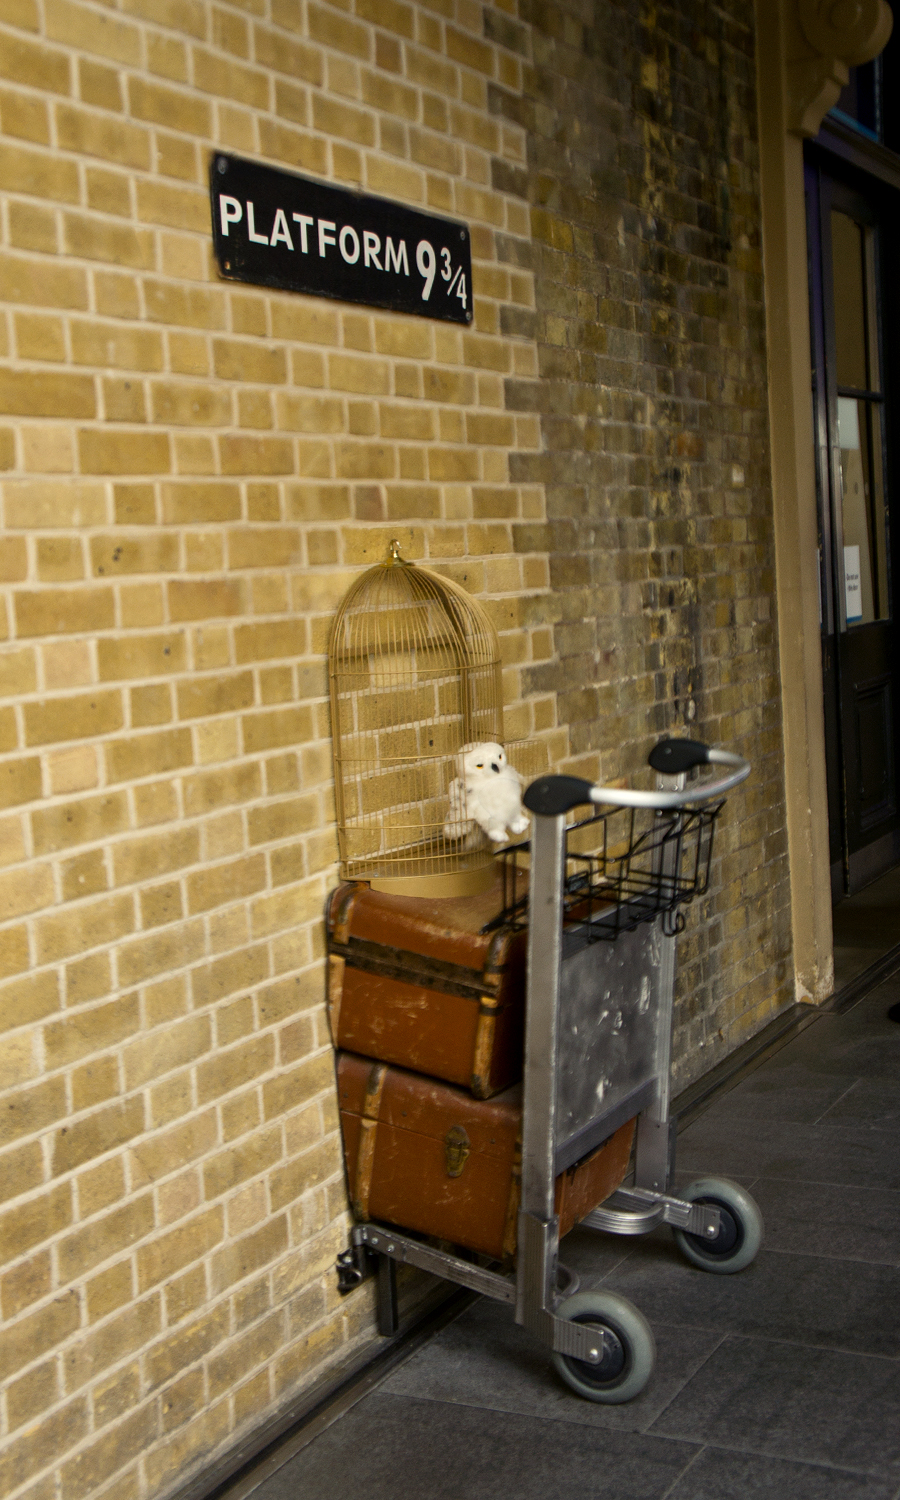 2014-kings-cross-station-london-uk-2